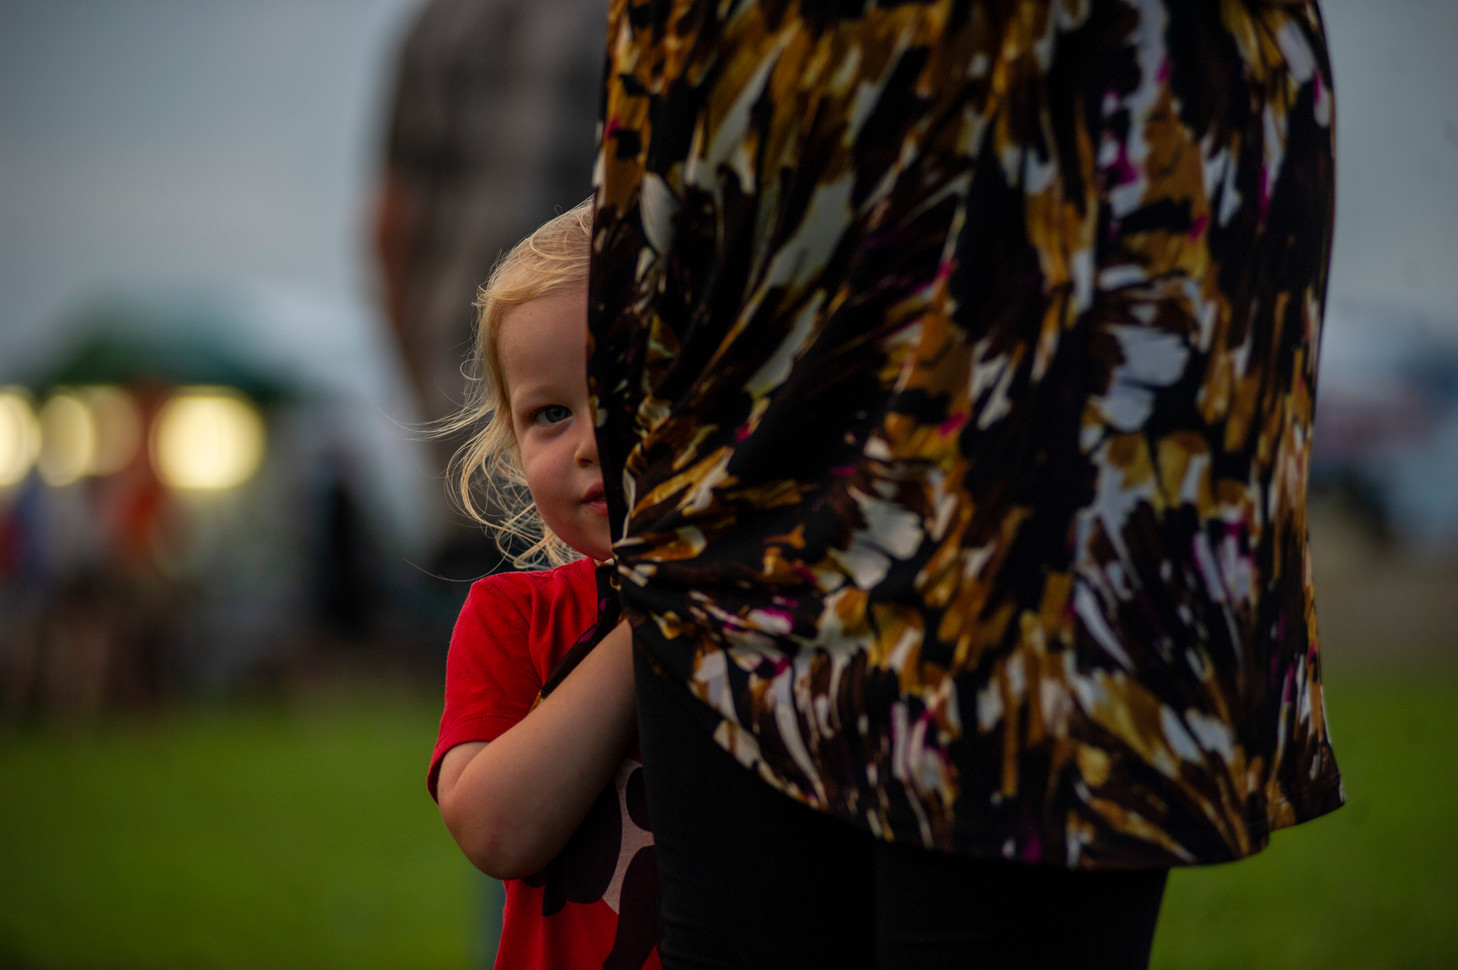 A young girl hides behind her mom after being scolded for running away.